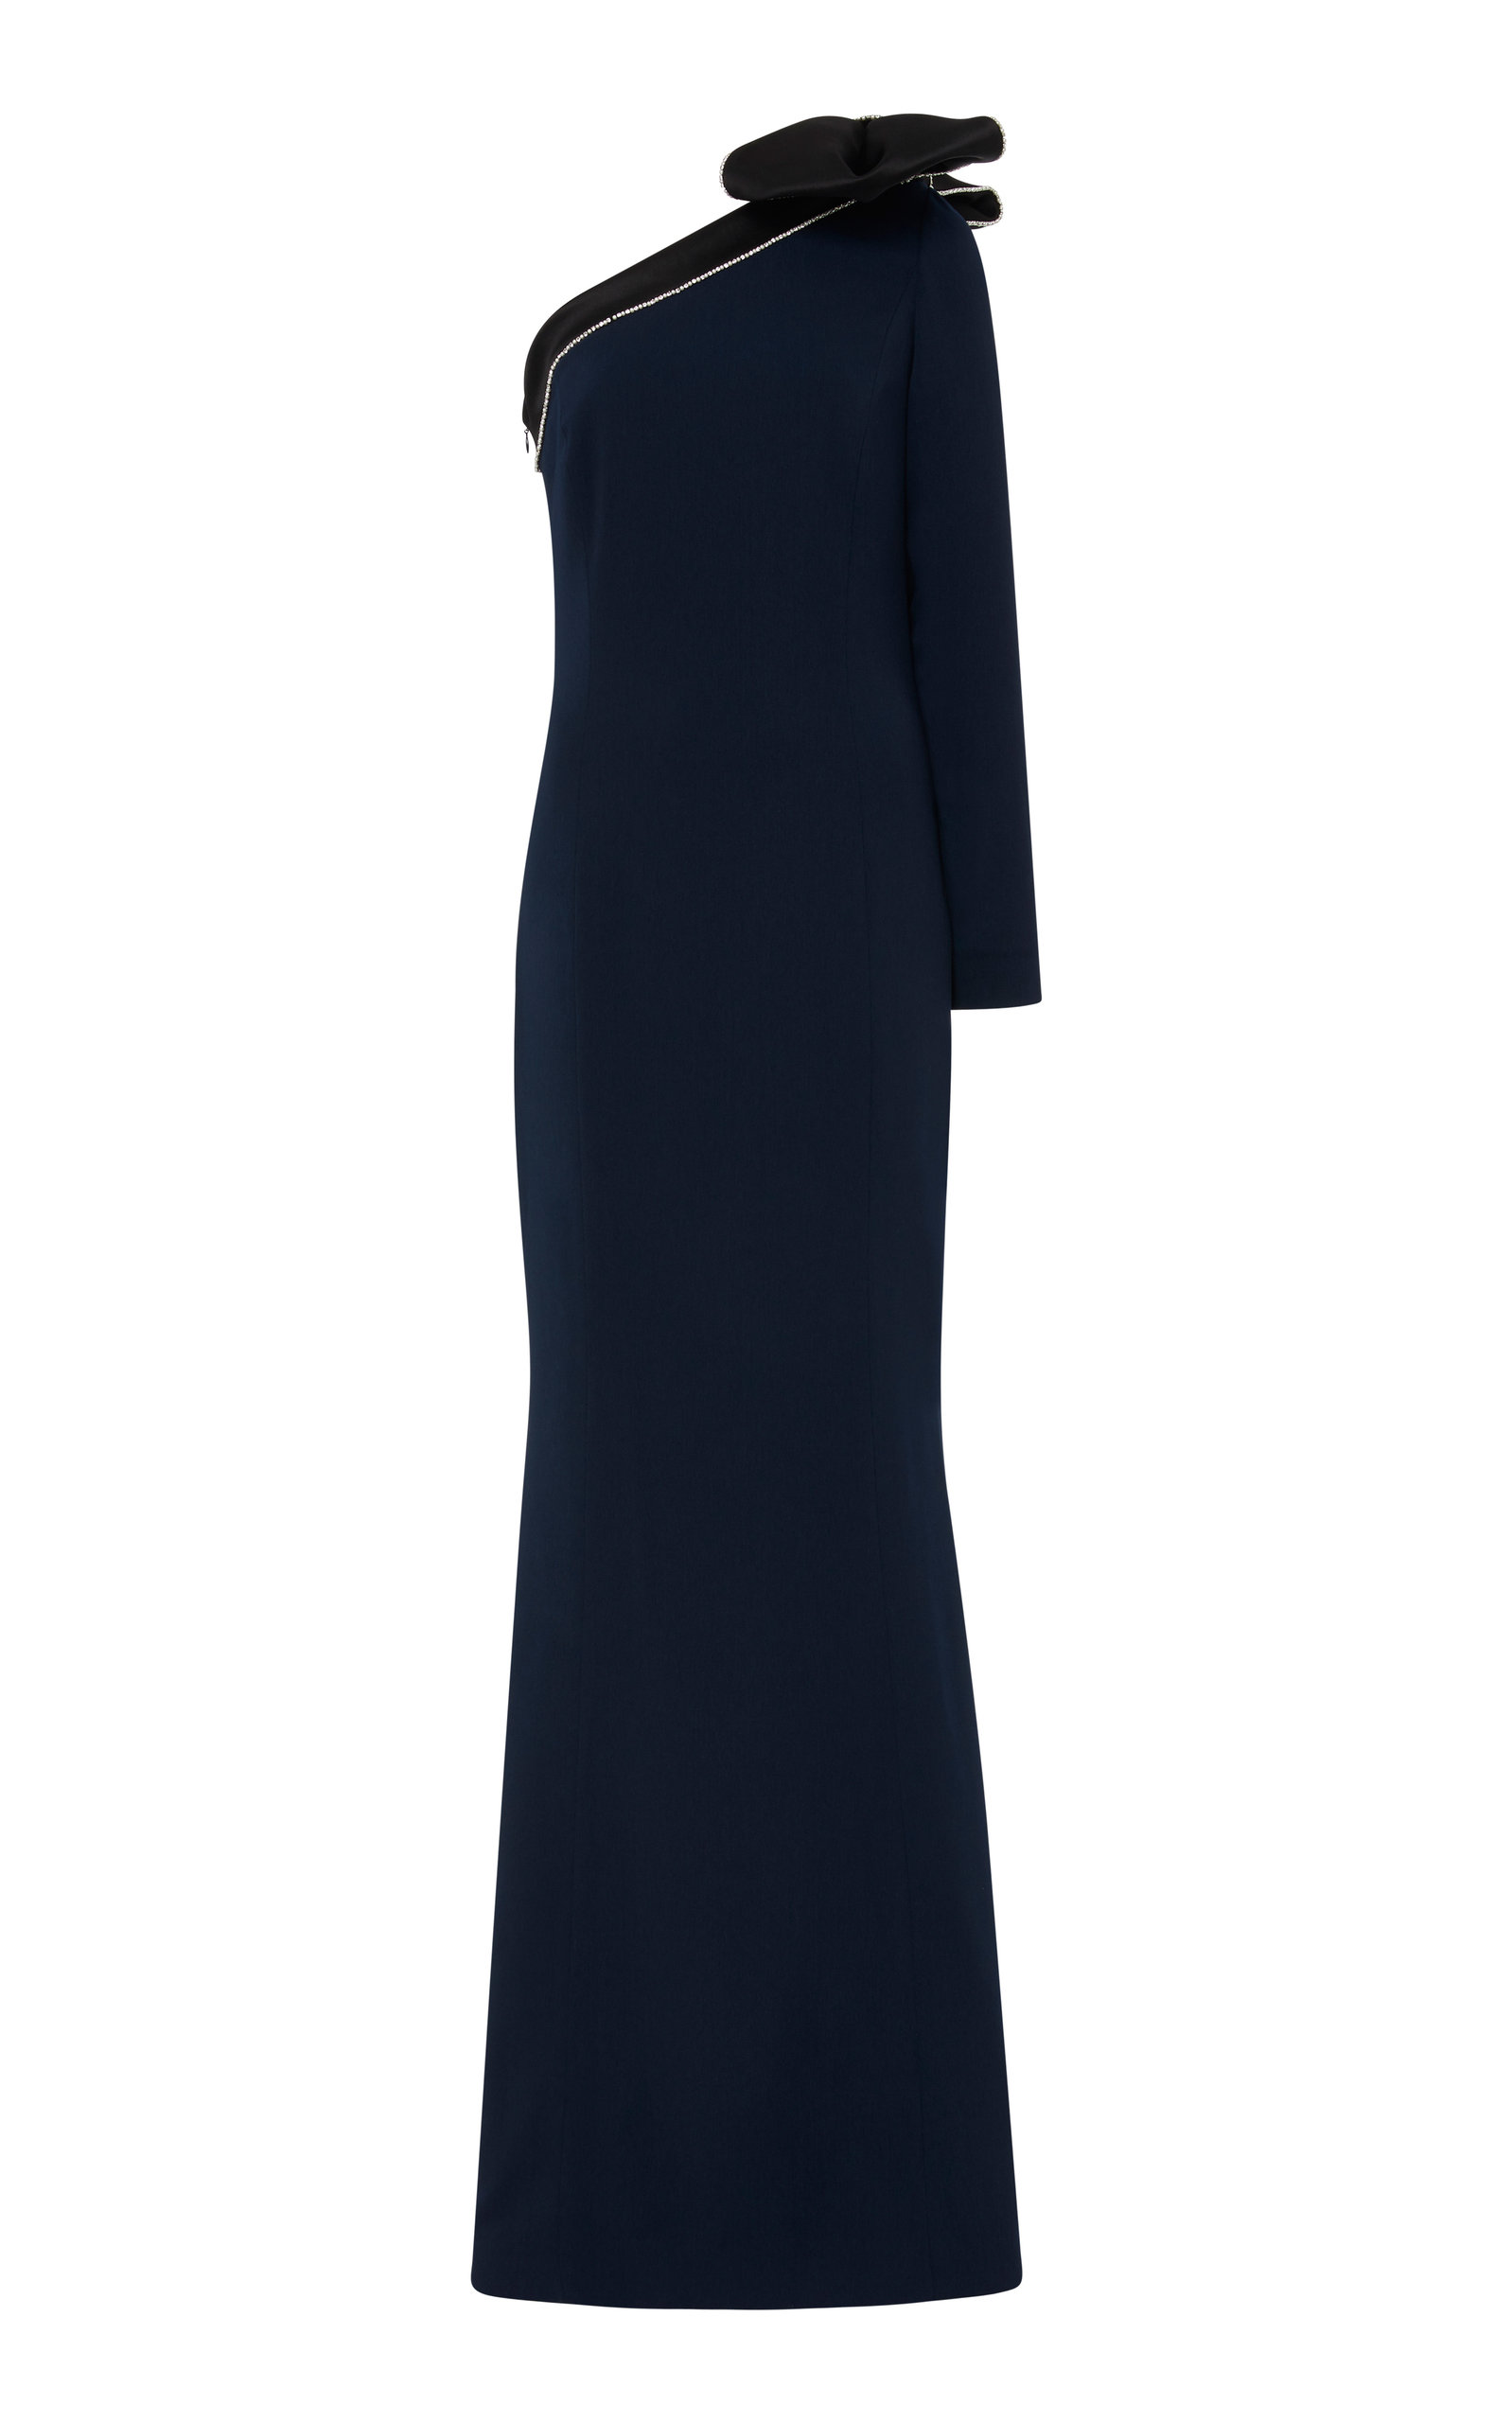 ELIZABETH KENNEDY One-Shoulder Crepe Gown in Blue